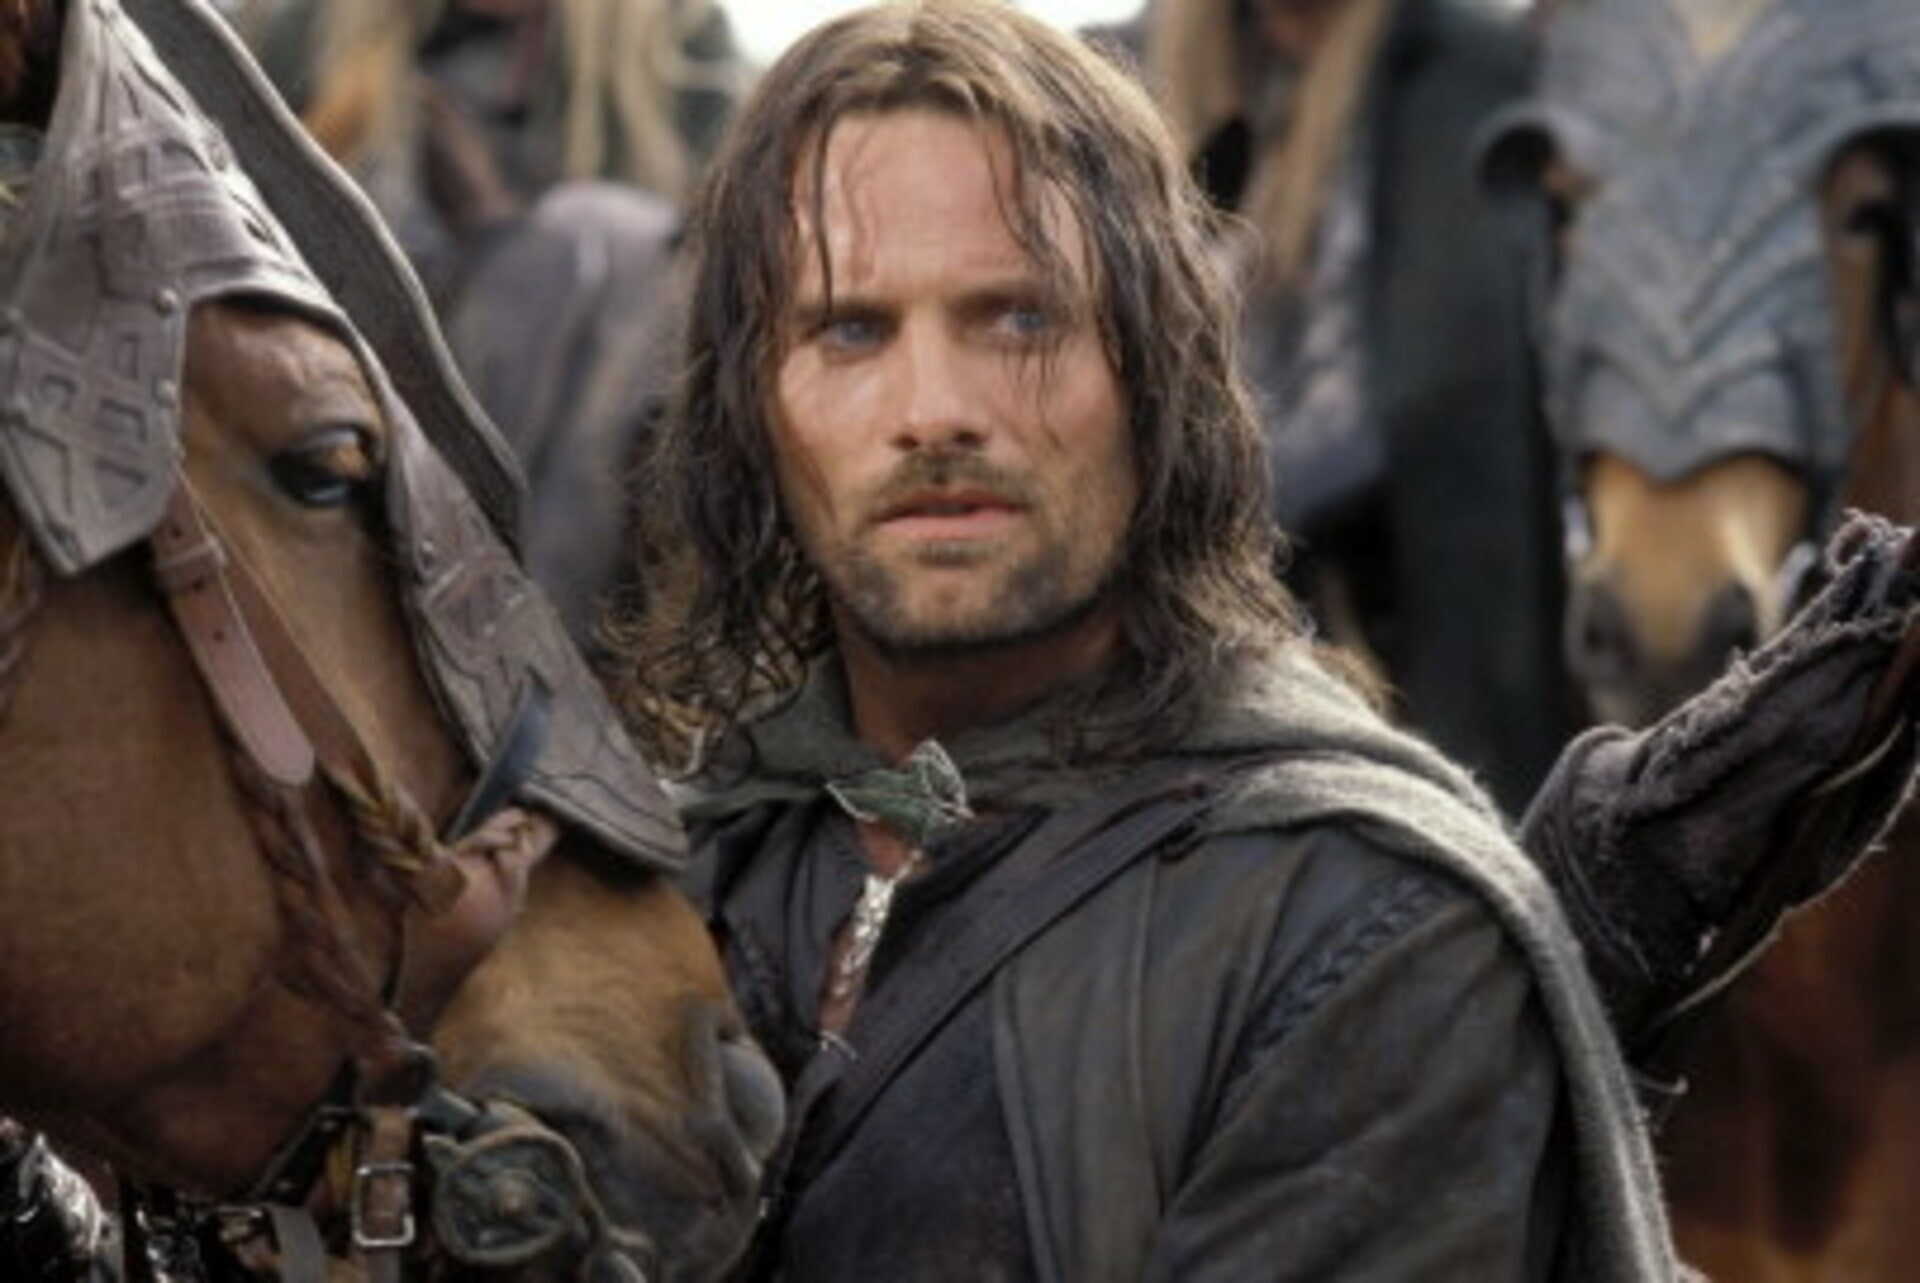 The Lord of the Rings: The Two Towers - Image 58